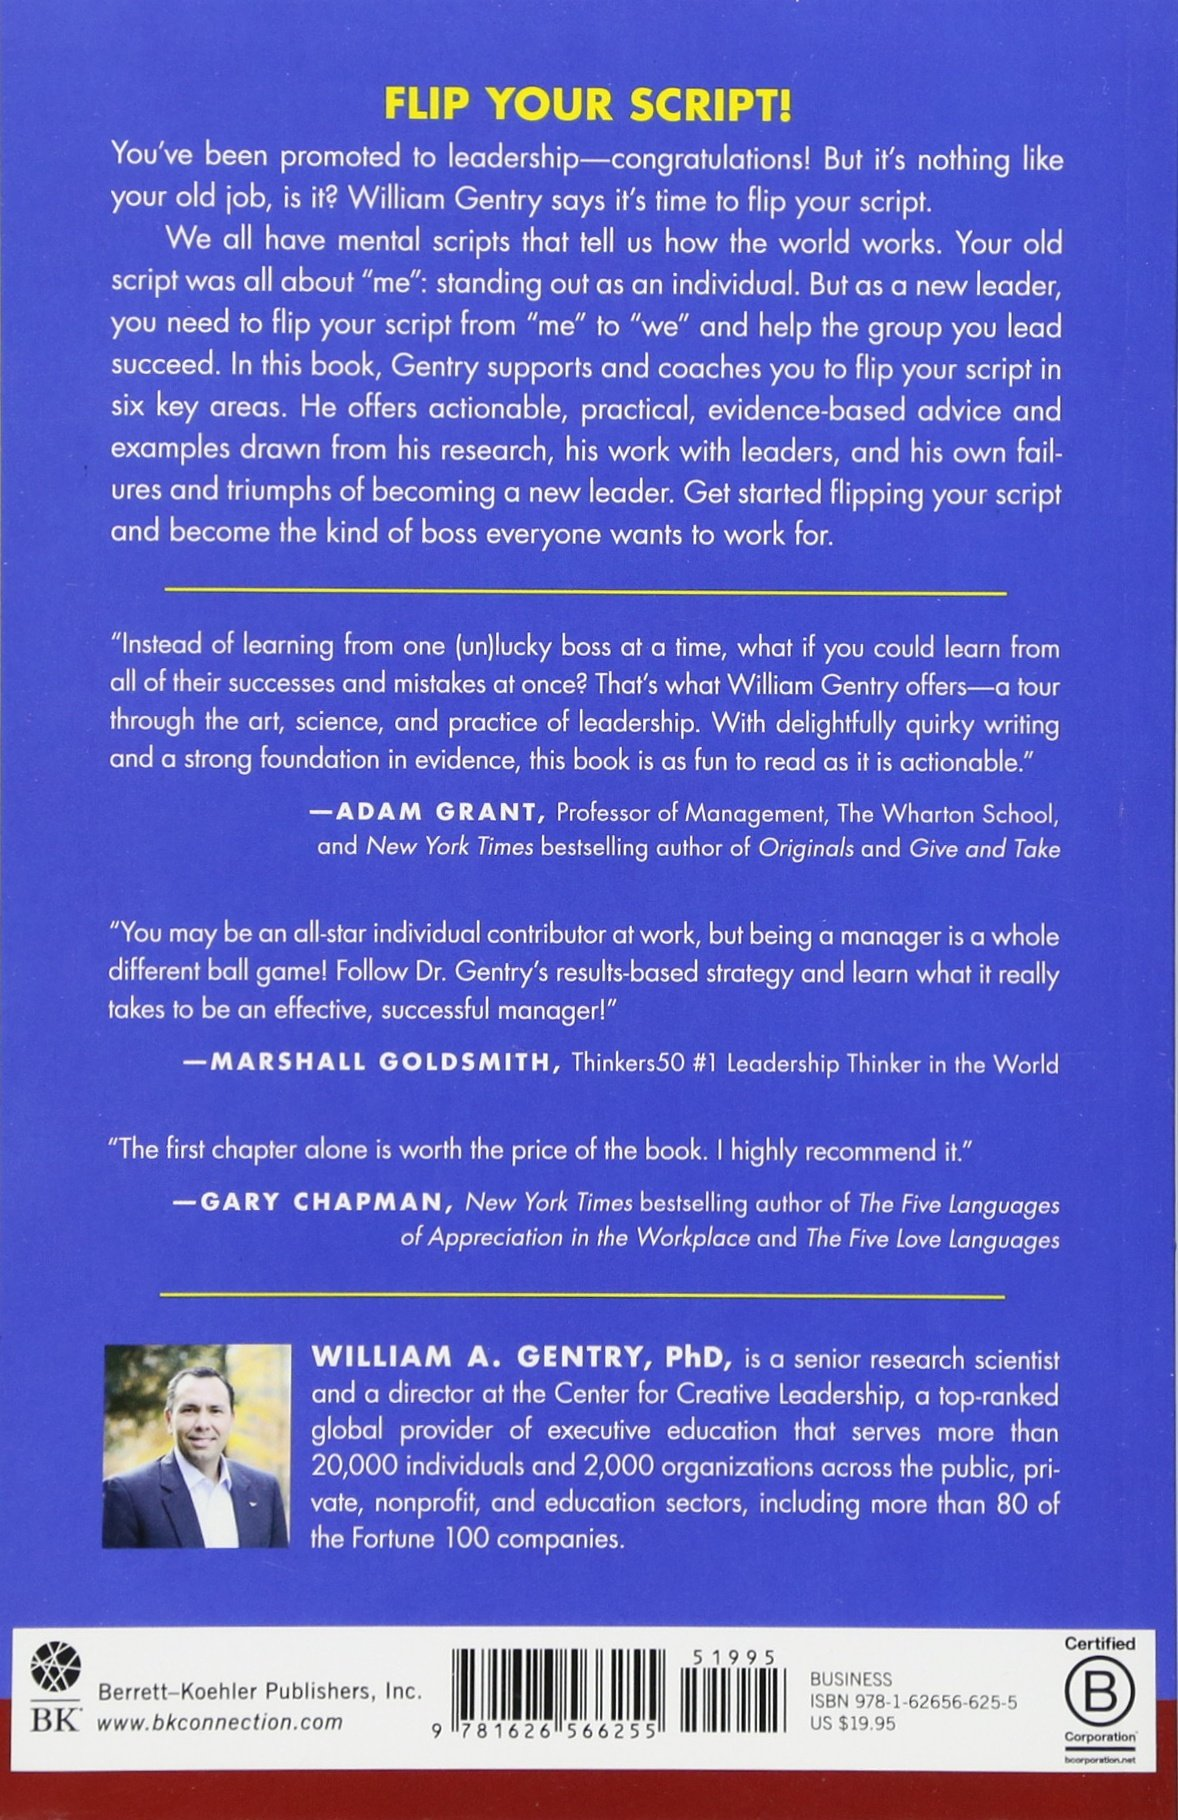 Be the boss everyone wants to work for a guide for new leaders be the boss everyone wants to work for a guide for new leaders william a gentry 9781626566255 amazon books fandeluxe Image collections